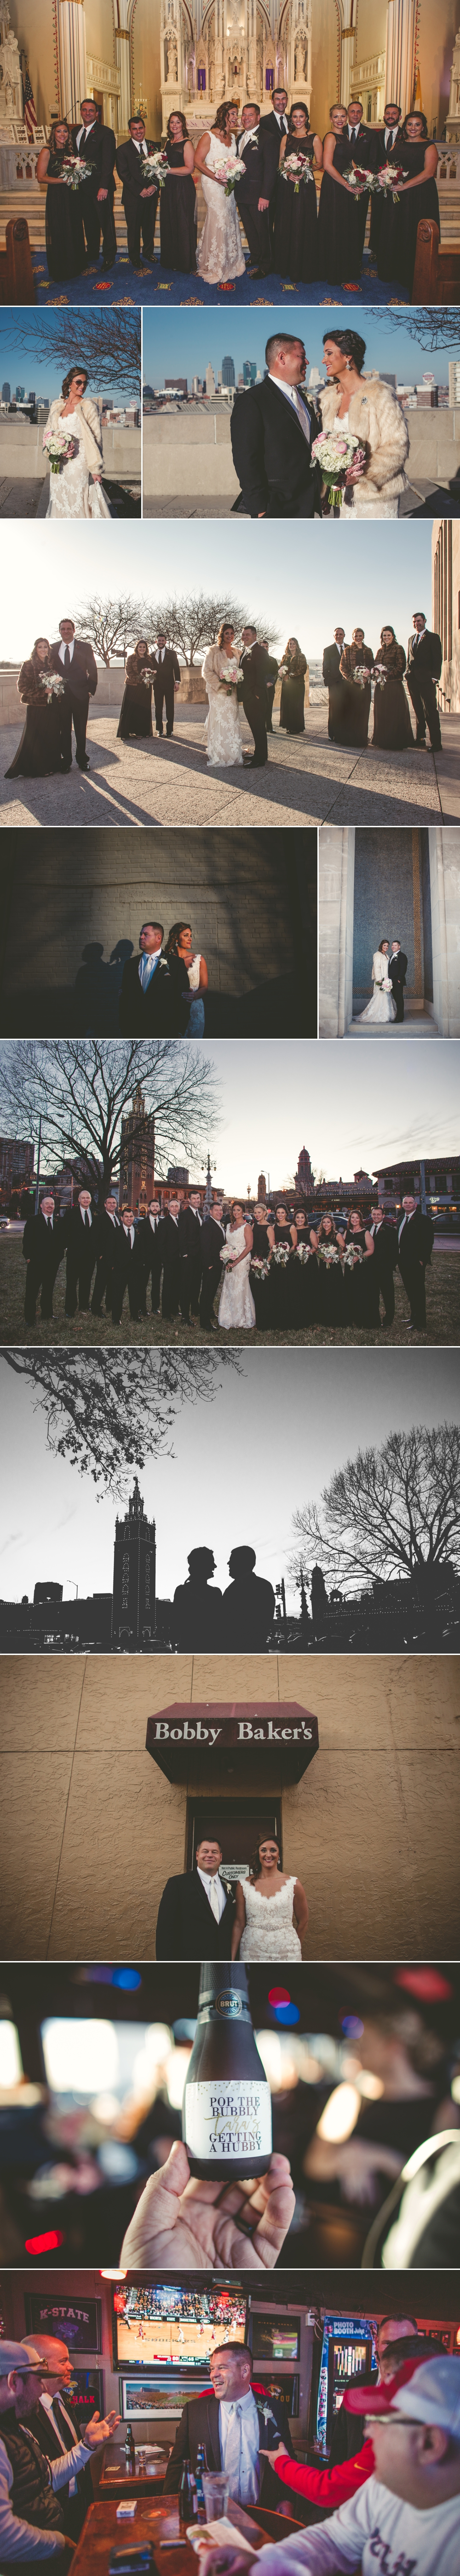 jason_domingues_photography_best_kansas_city_wedding_photographer_kc_weddings_redemptorist_church_28_event_space_december0003.JPG